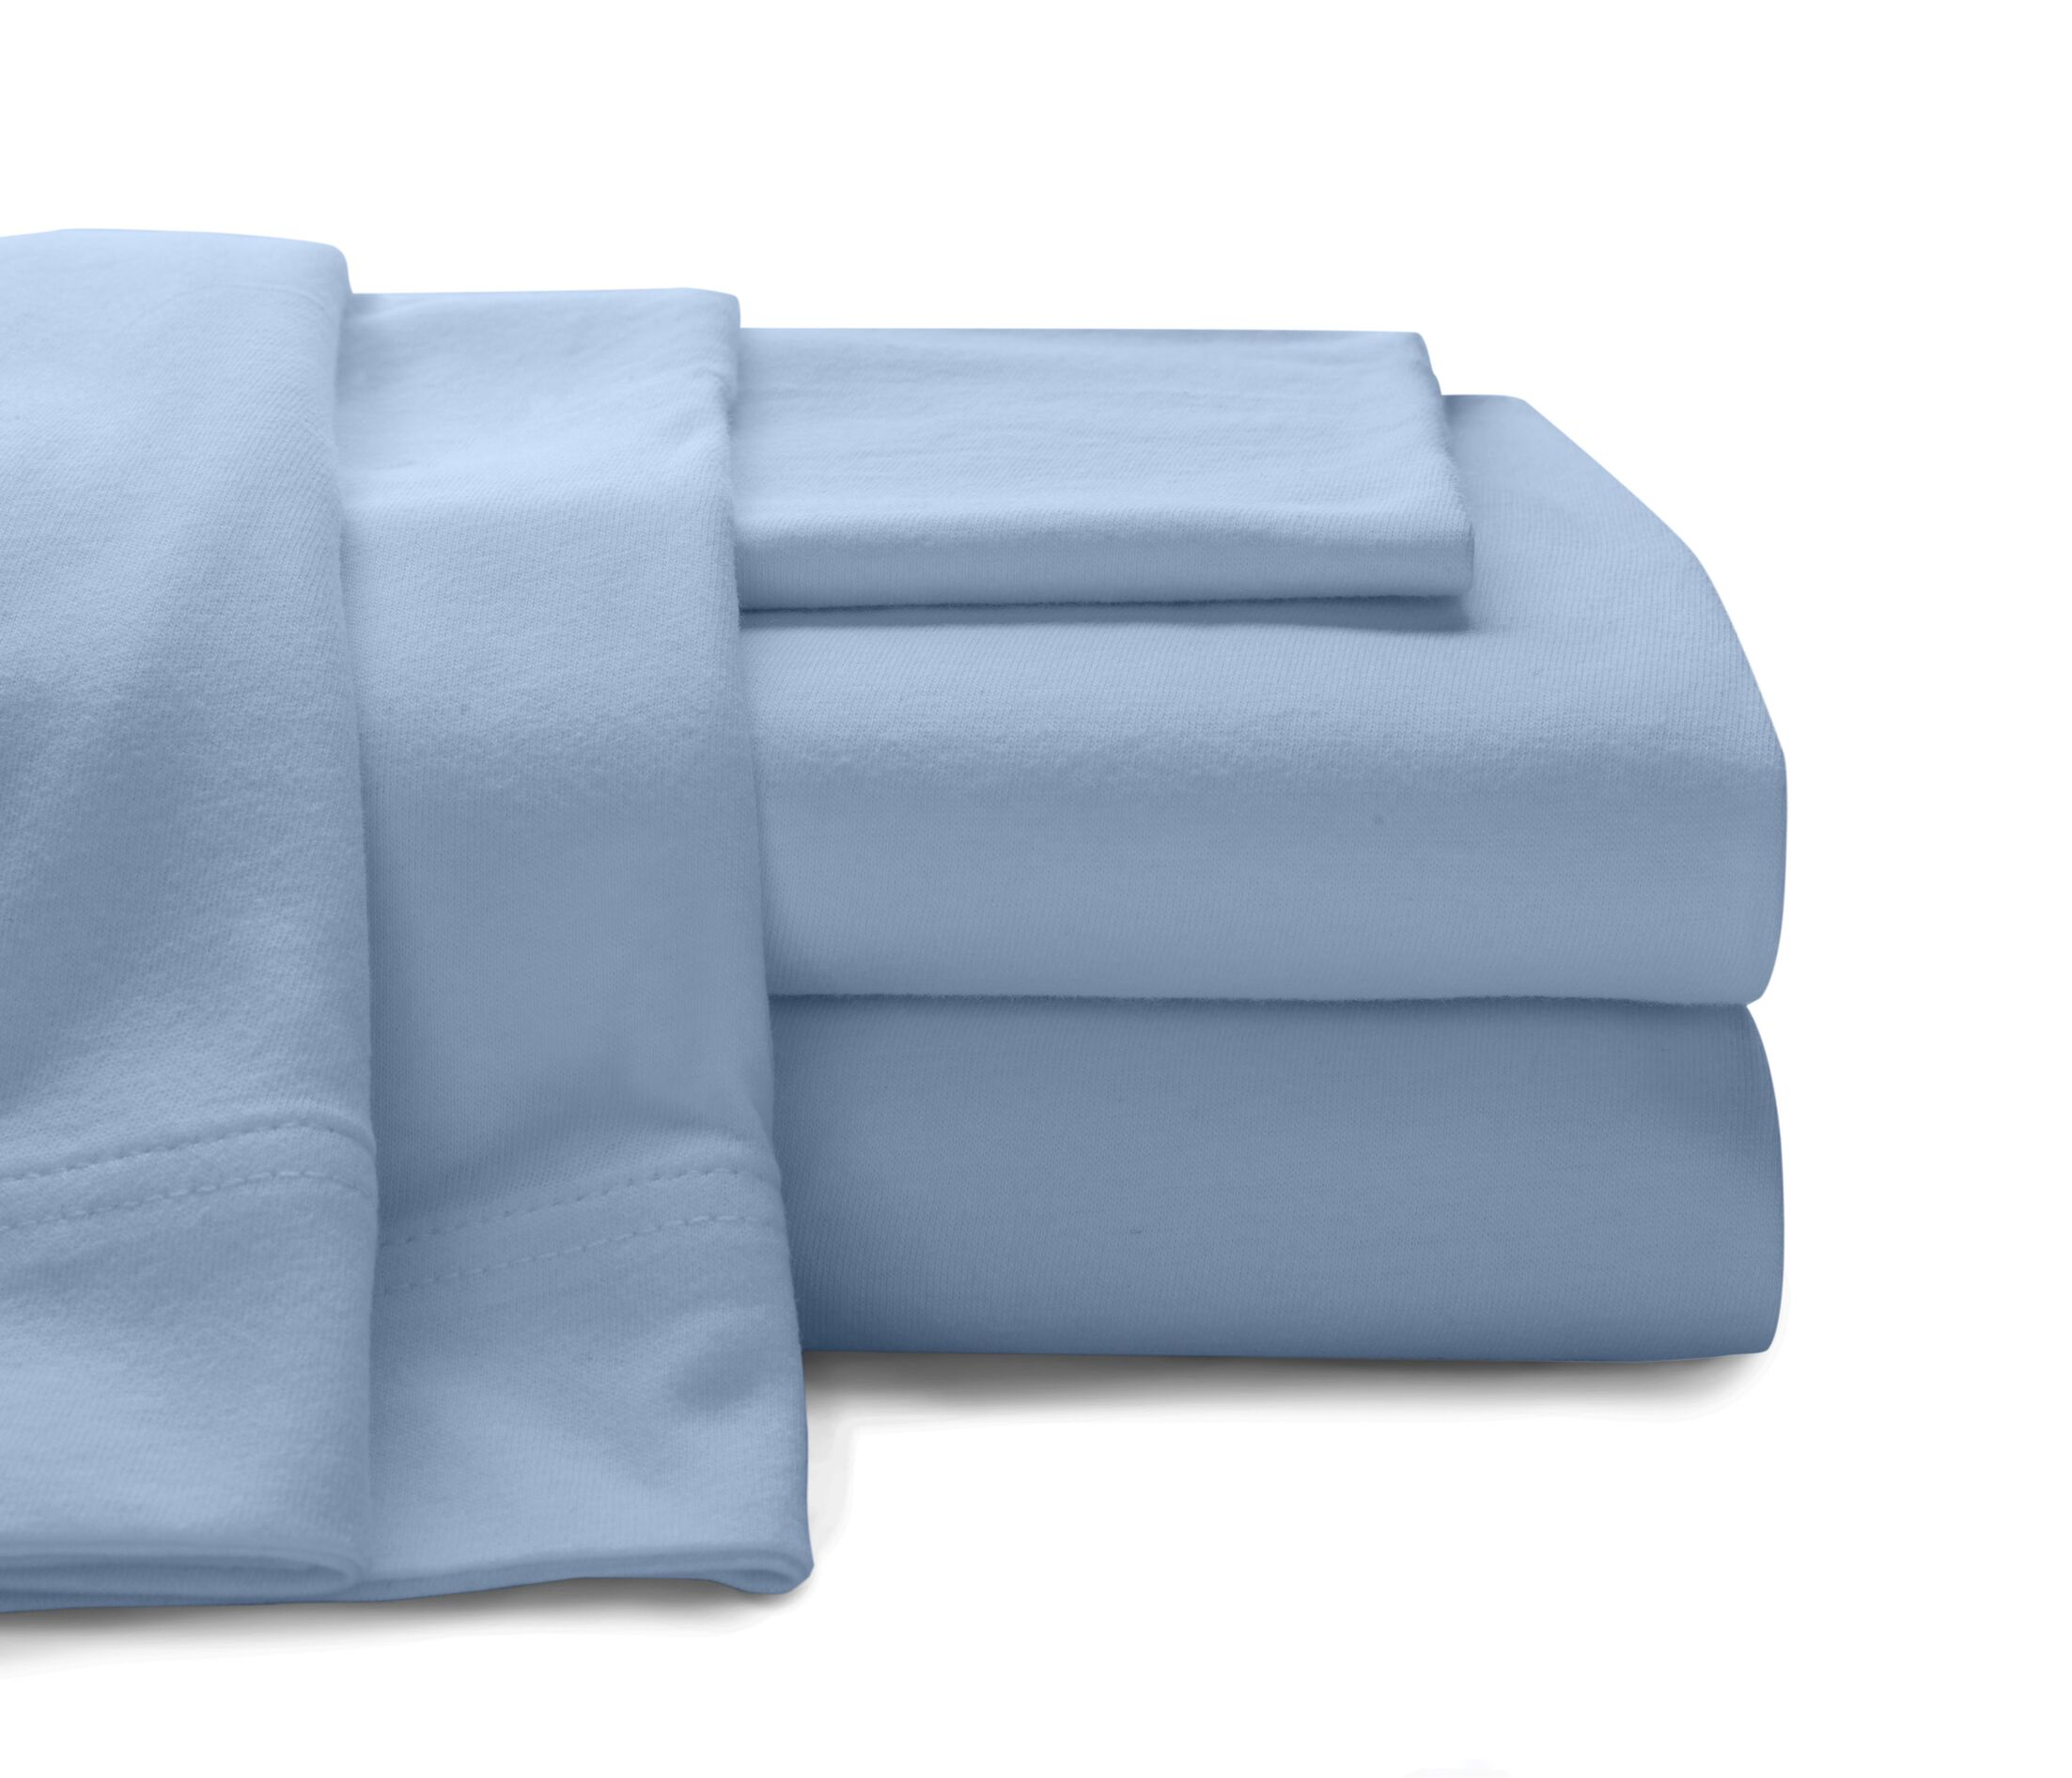 Mccoy Super Soft Jersey 100% Cotton Sheet Set Color: Blue, Size: King